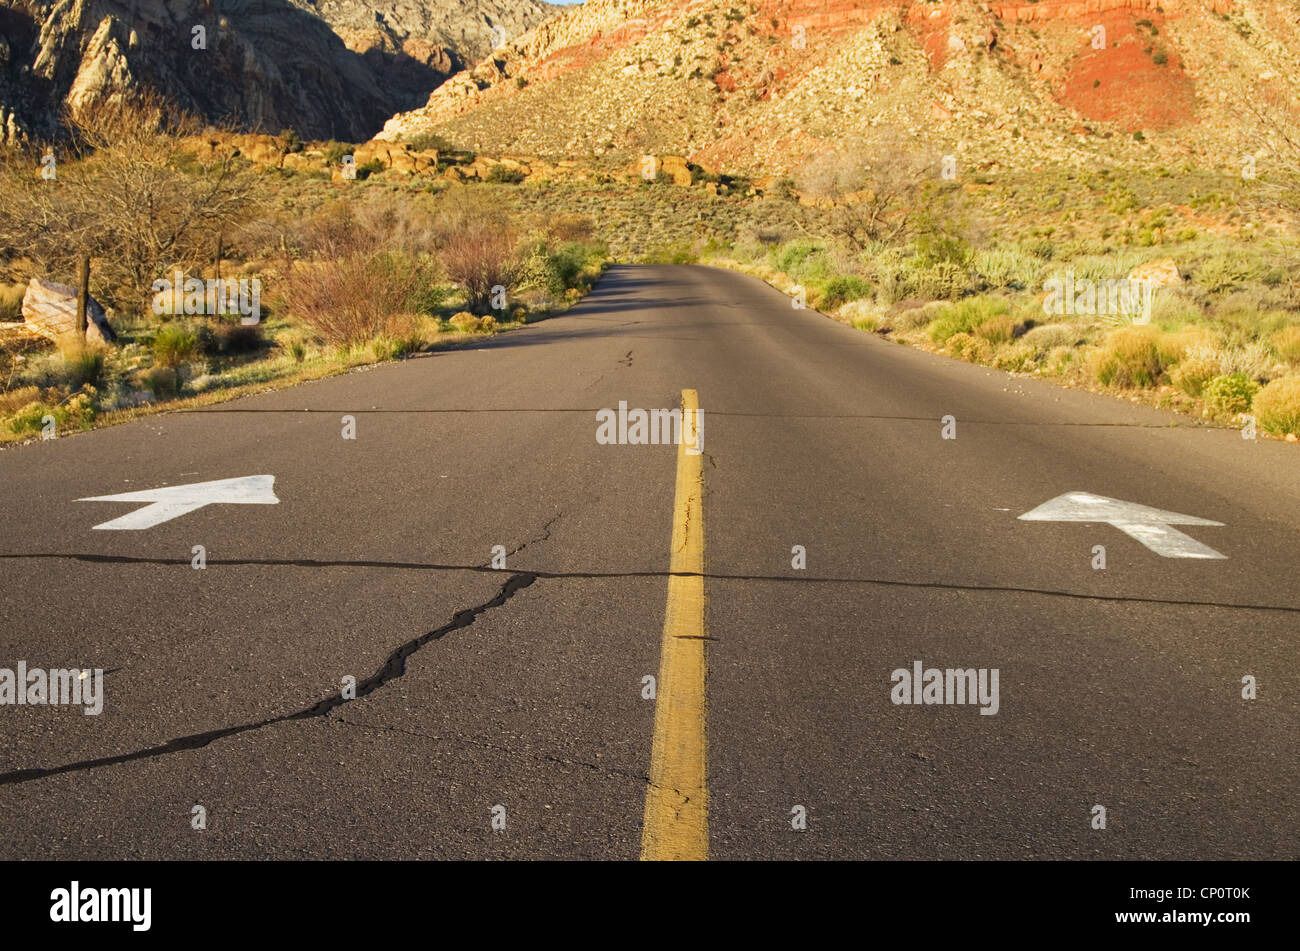 arrows on a one way road point forward towards the mountains - Stock Image